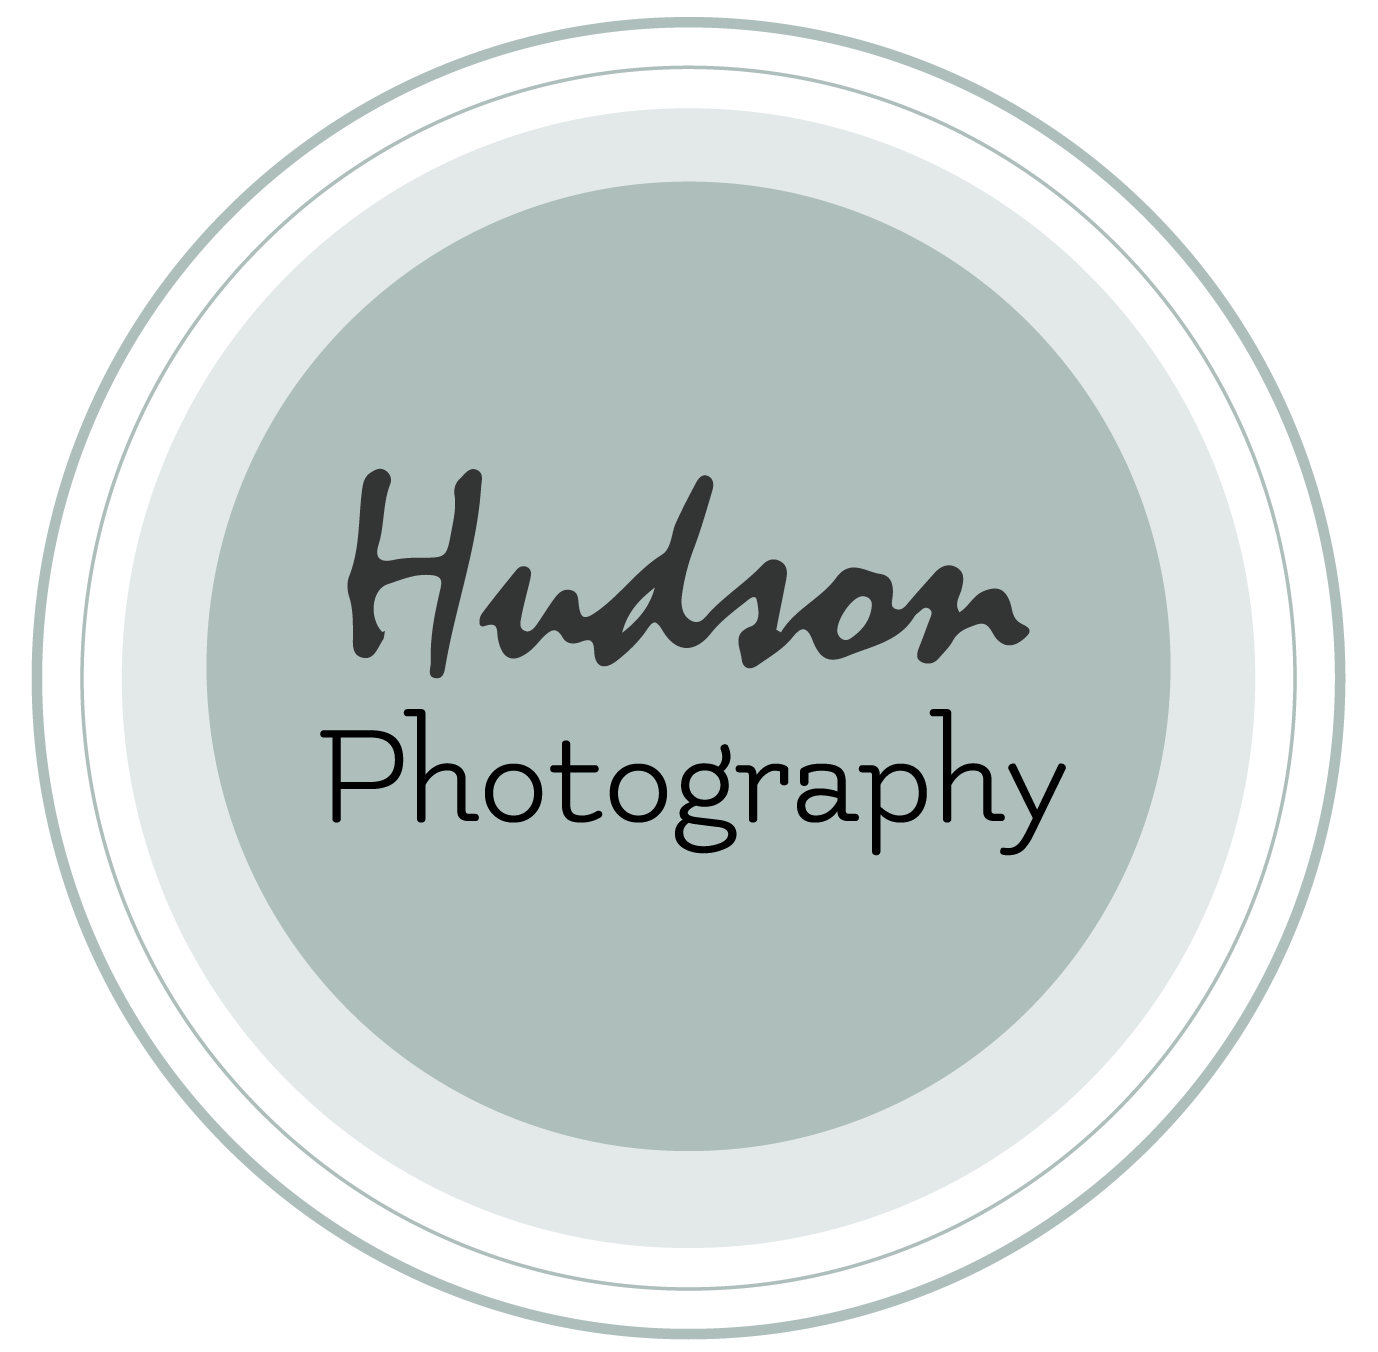 Rich Hudson Photography